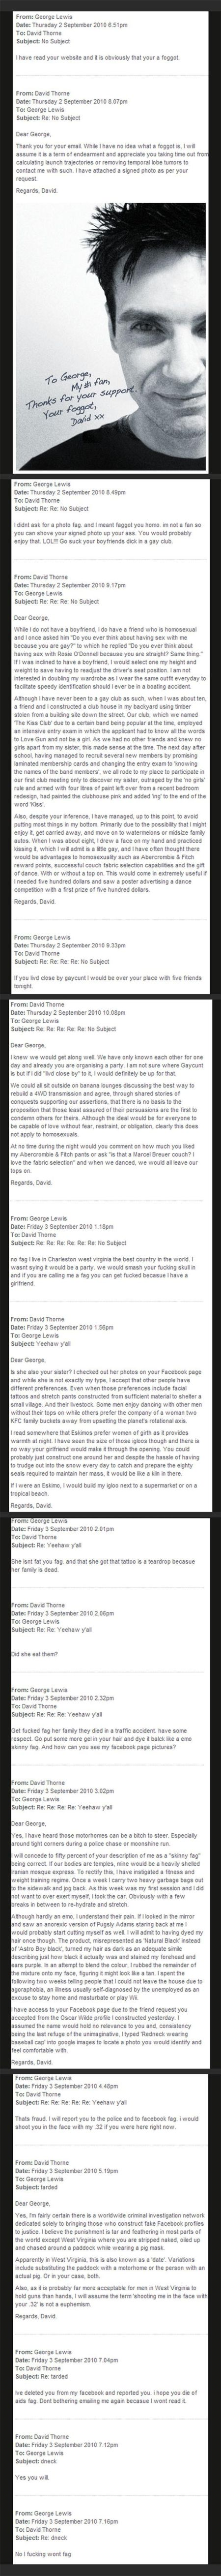 David Thorne to George Lewis email funny